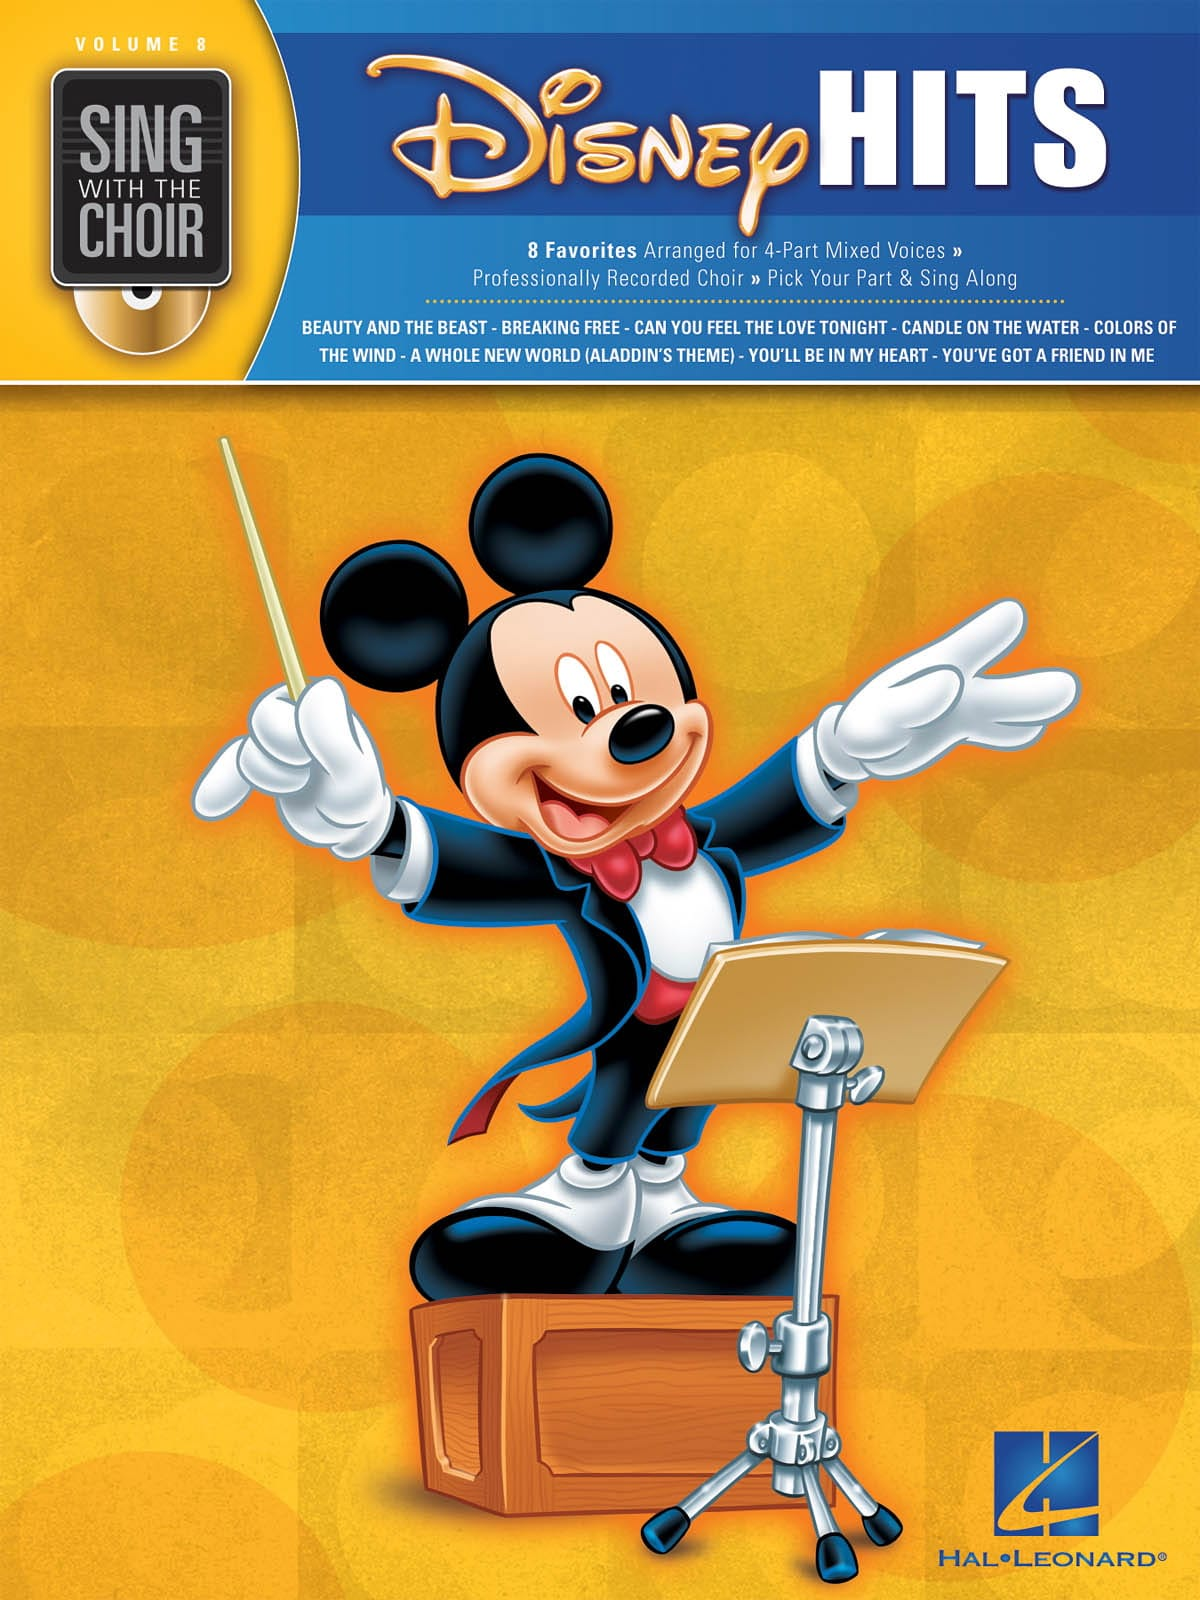 DISNEY - Sing With The Choir Volume 8 - Disney Hits - Partition - di-arezzo.co.uk